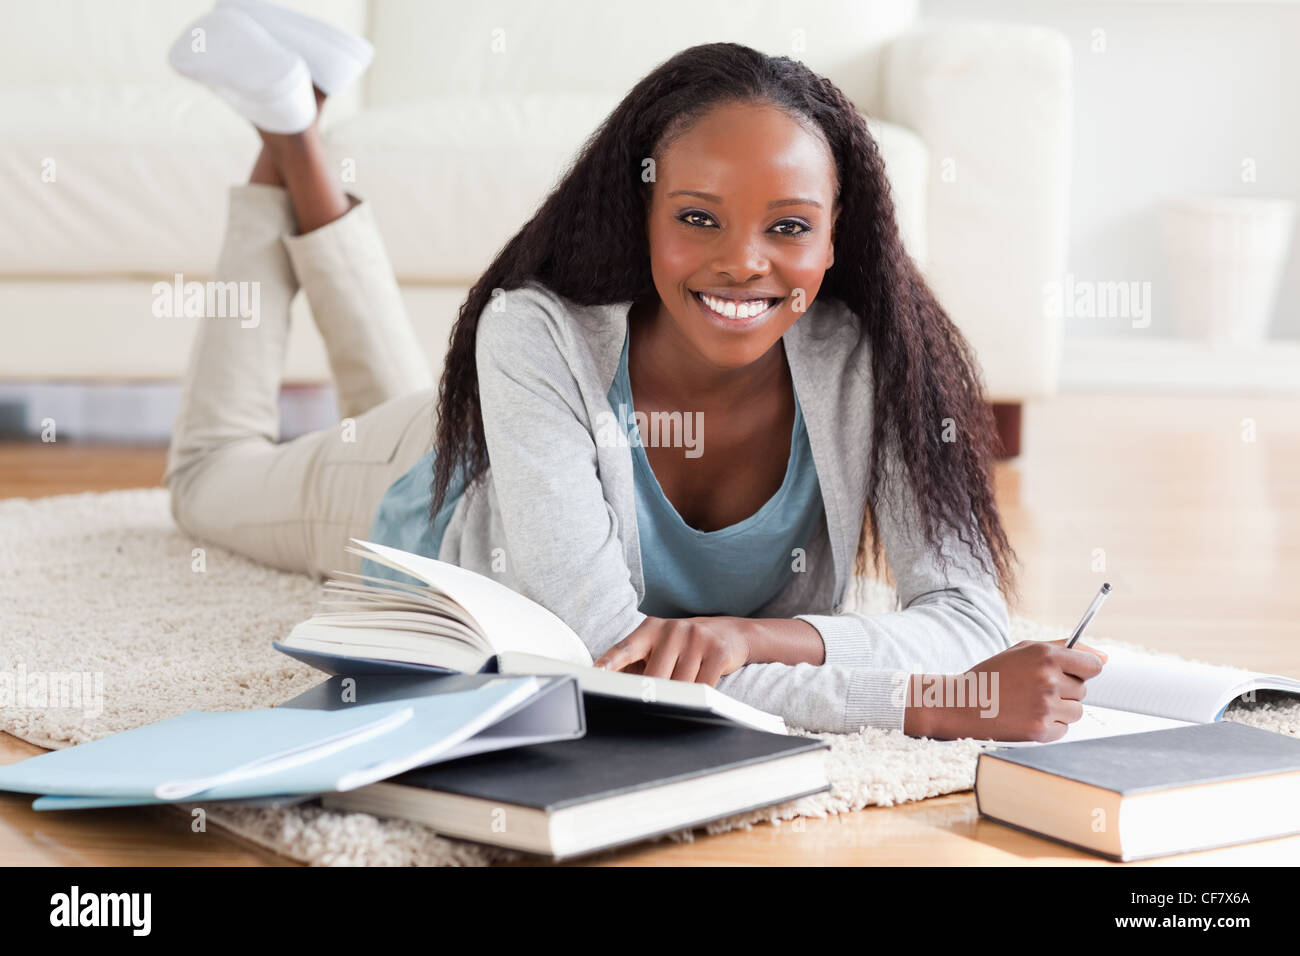 Woman lying on floor working on book review - Stock Image